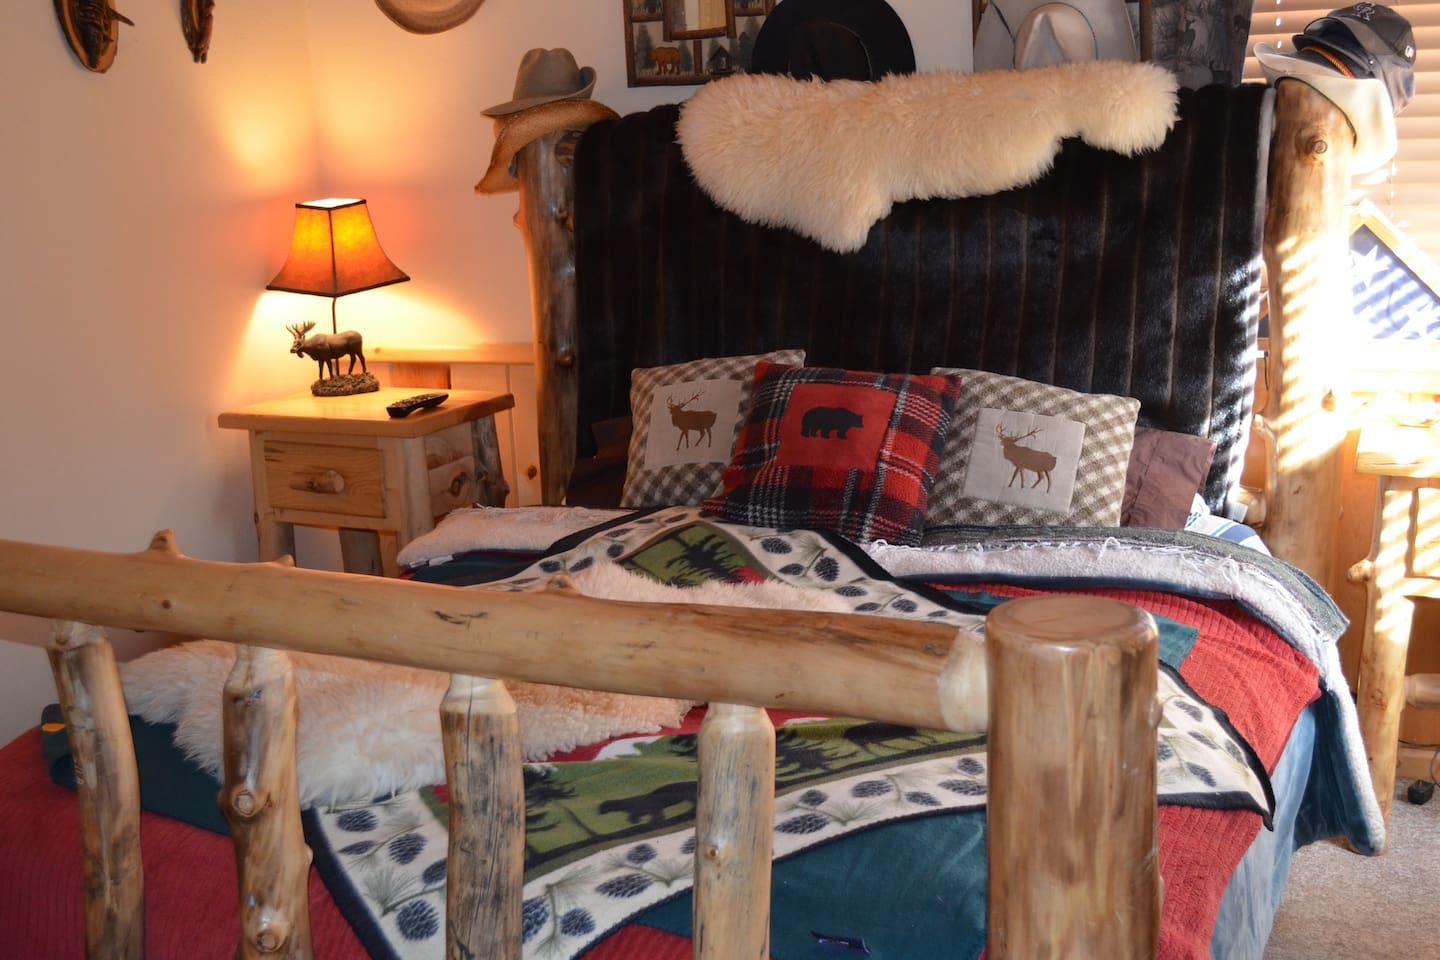 Cozy king size bed. This comfy get away  will lull you into sleep and you'll arise the calming sunrise in the woods.